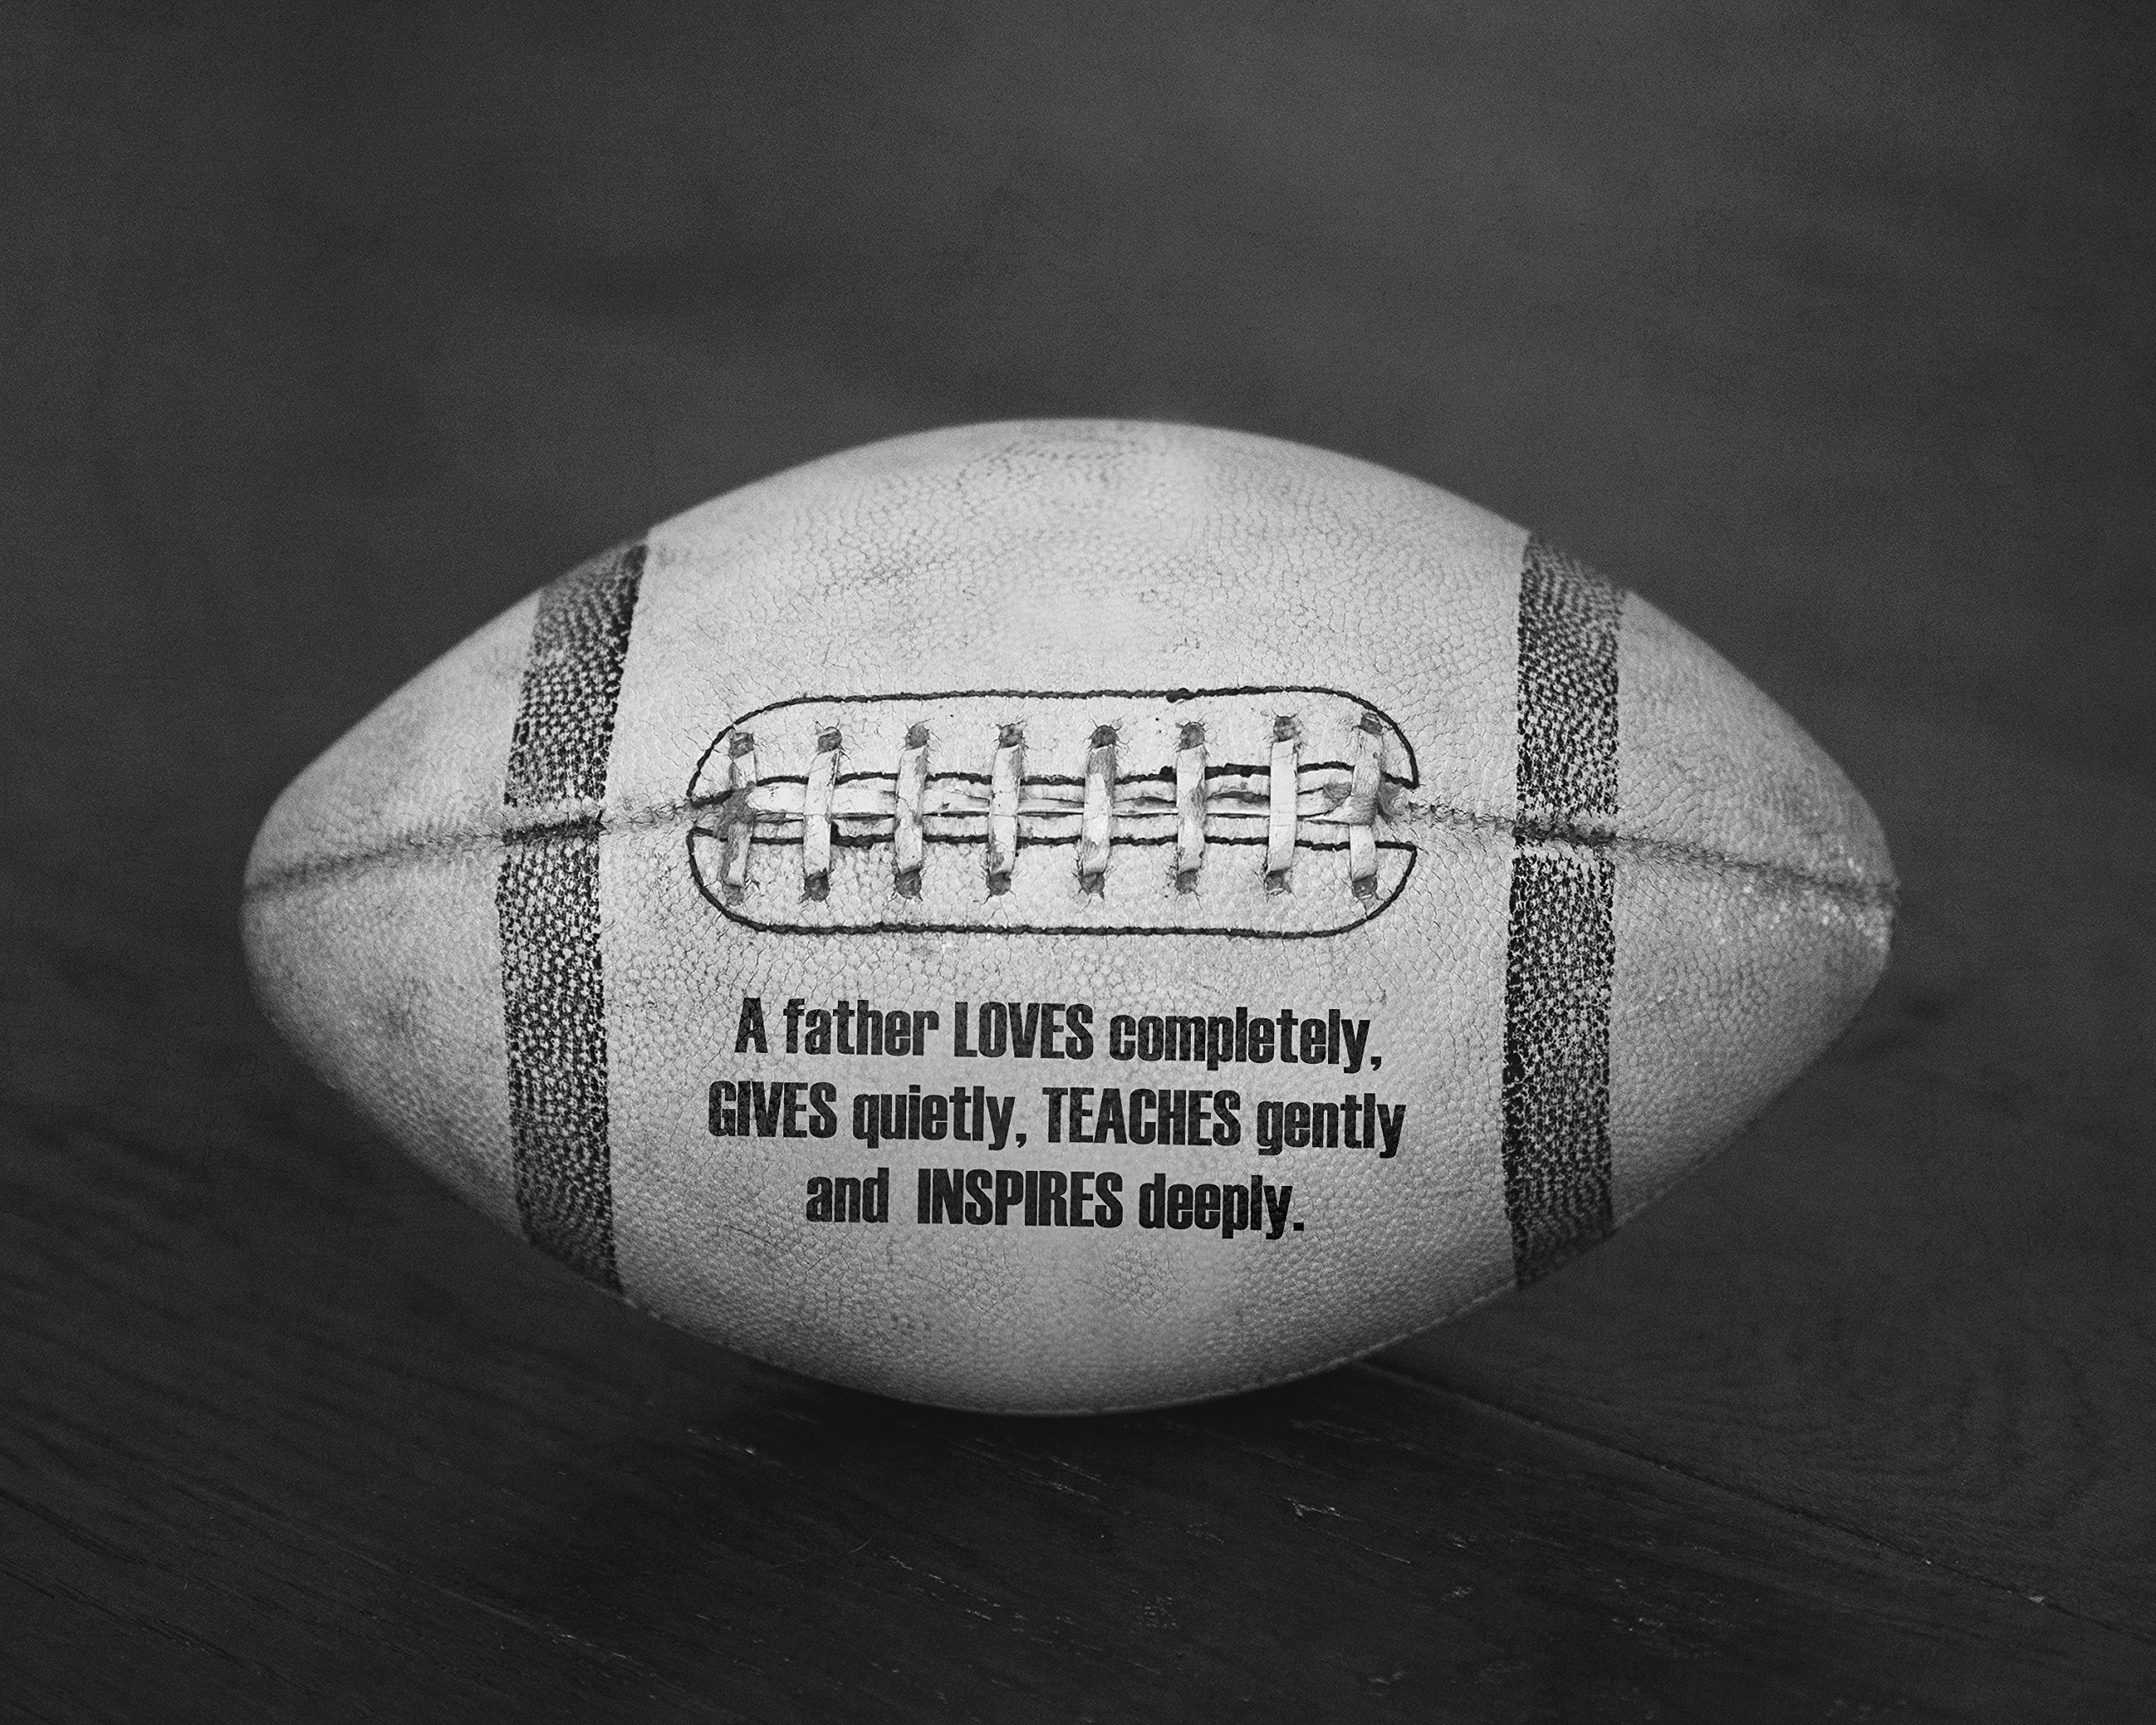 Black and White Football Sports Photograph Art Print with Father Love Poem Quote by Inspired Art Prints (Image #1)